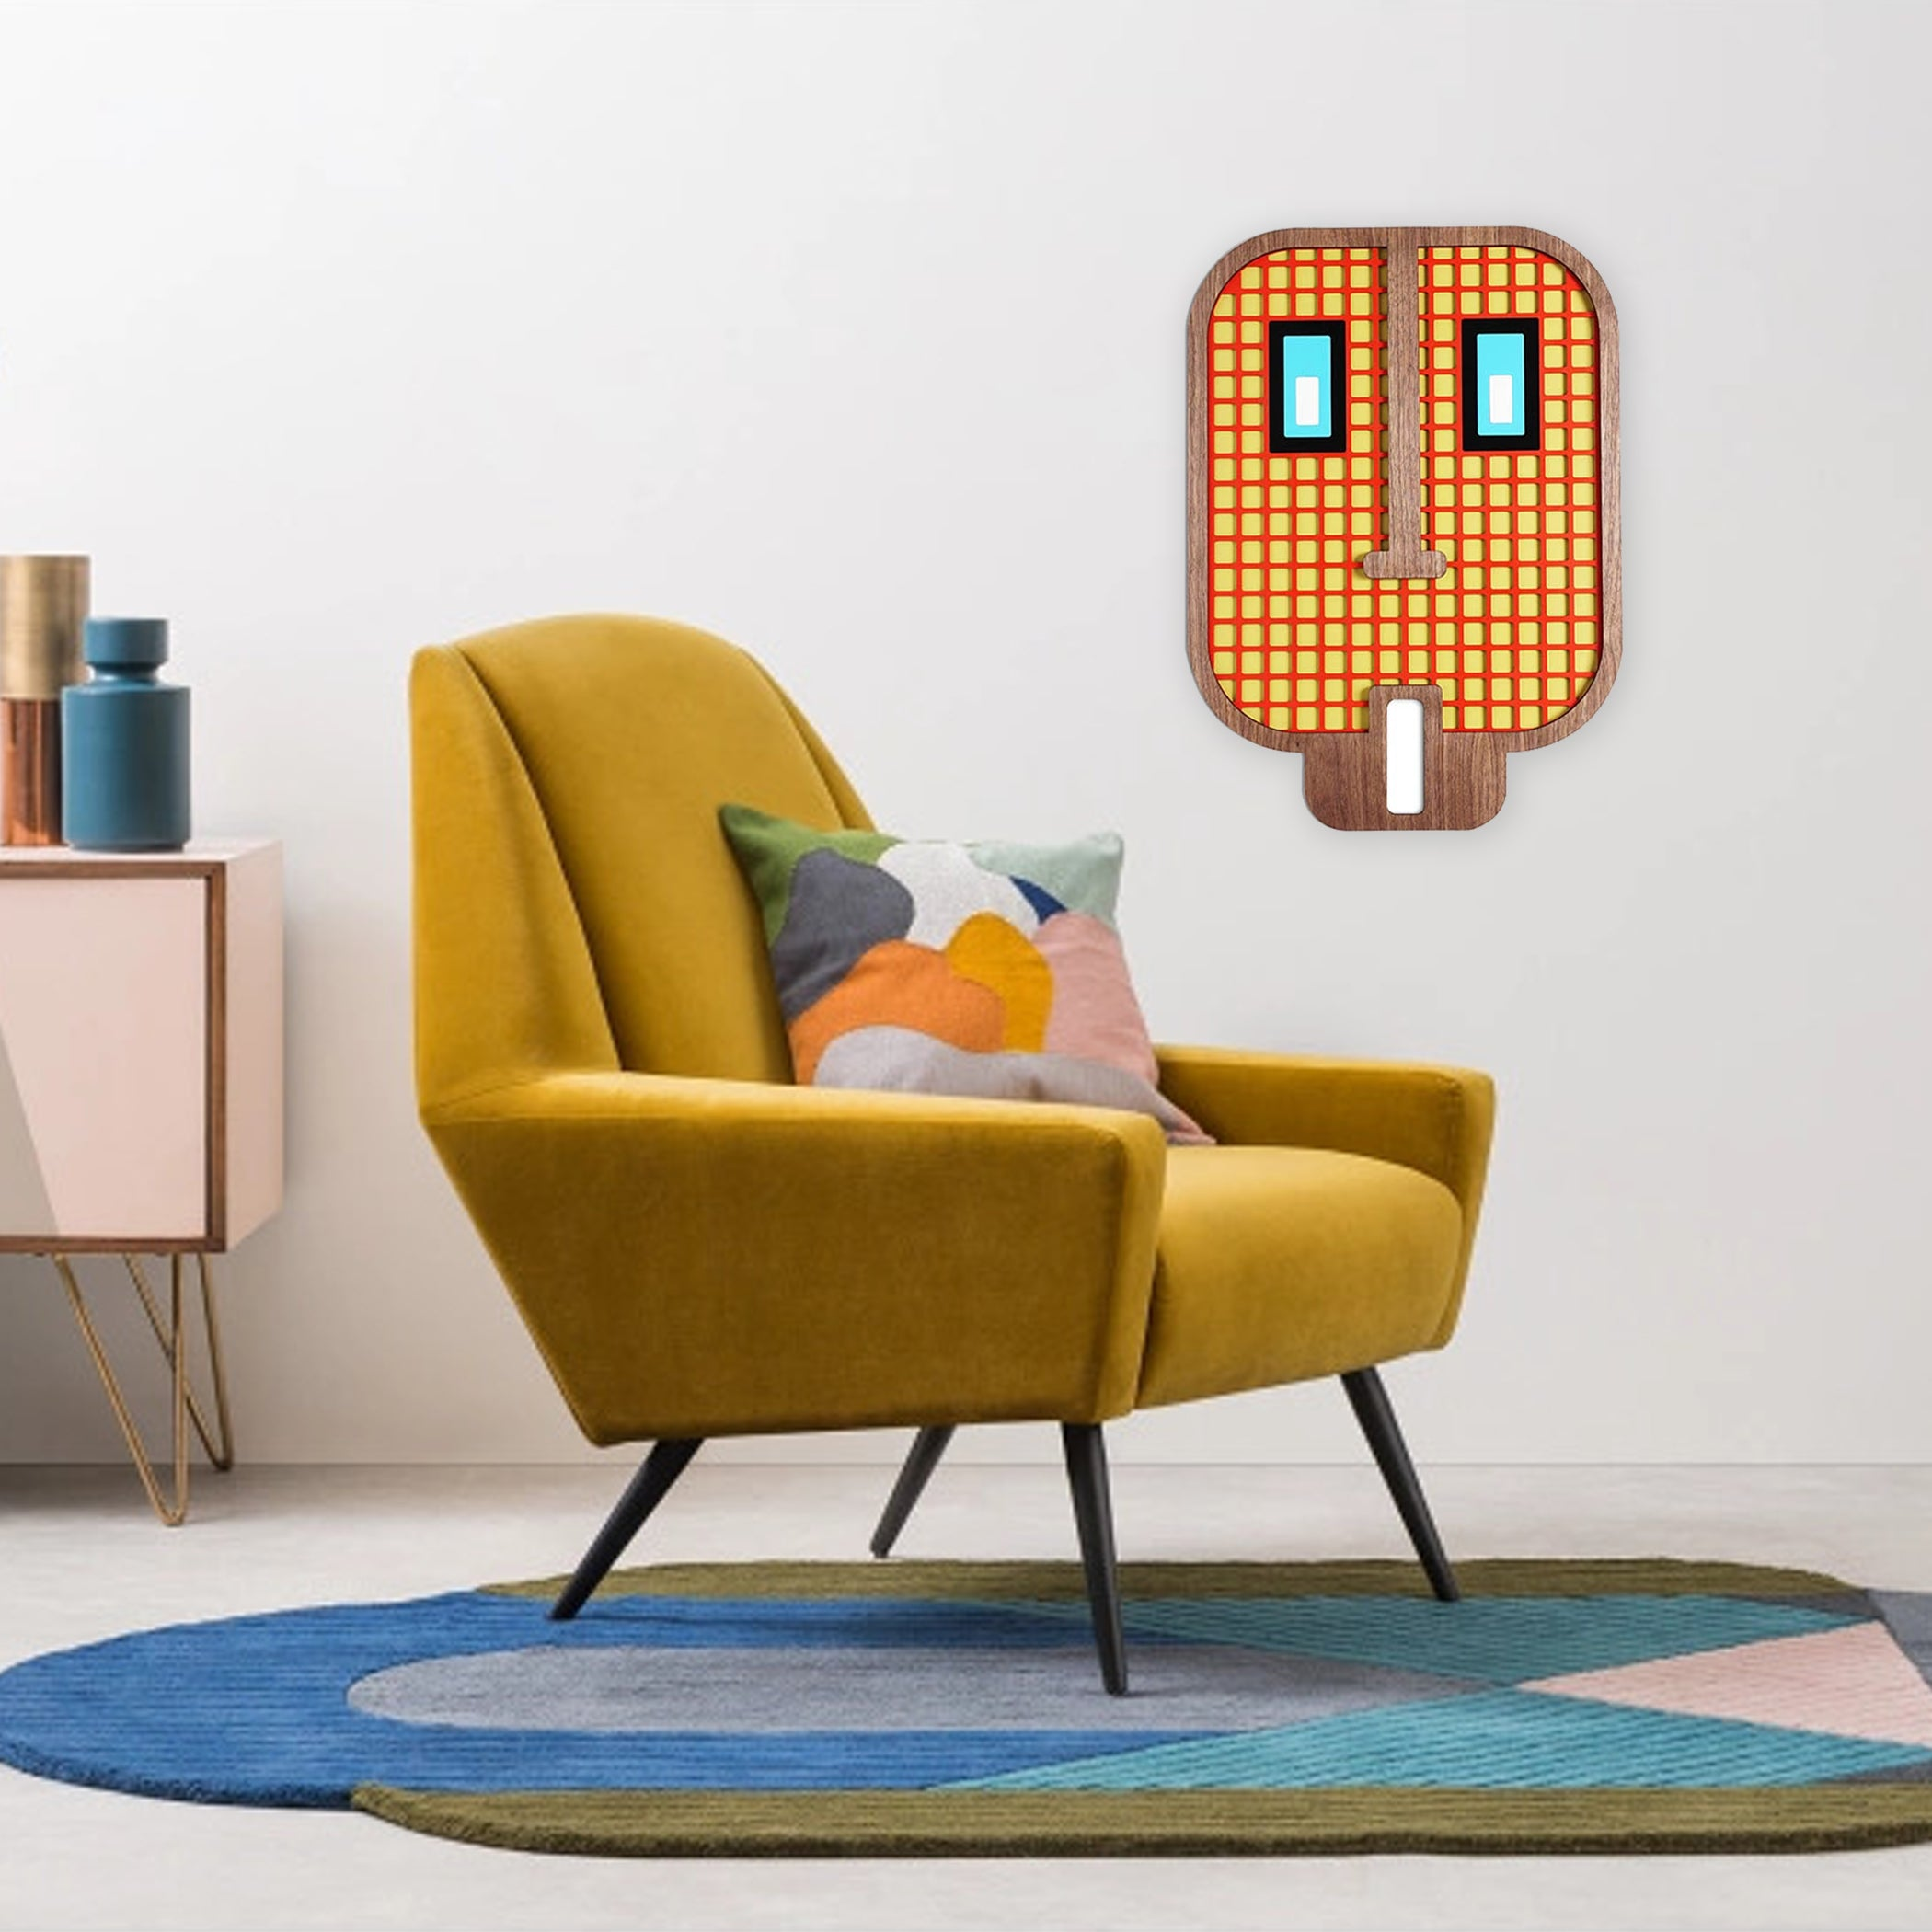 Living Room Wall Decor with Wood Emoji Decals